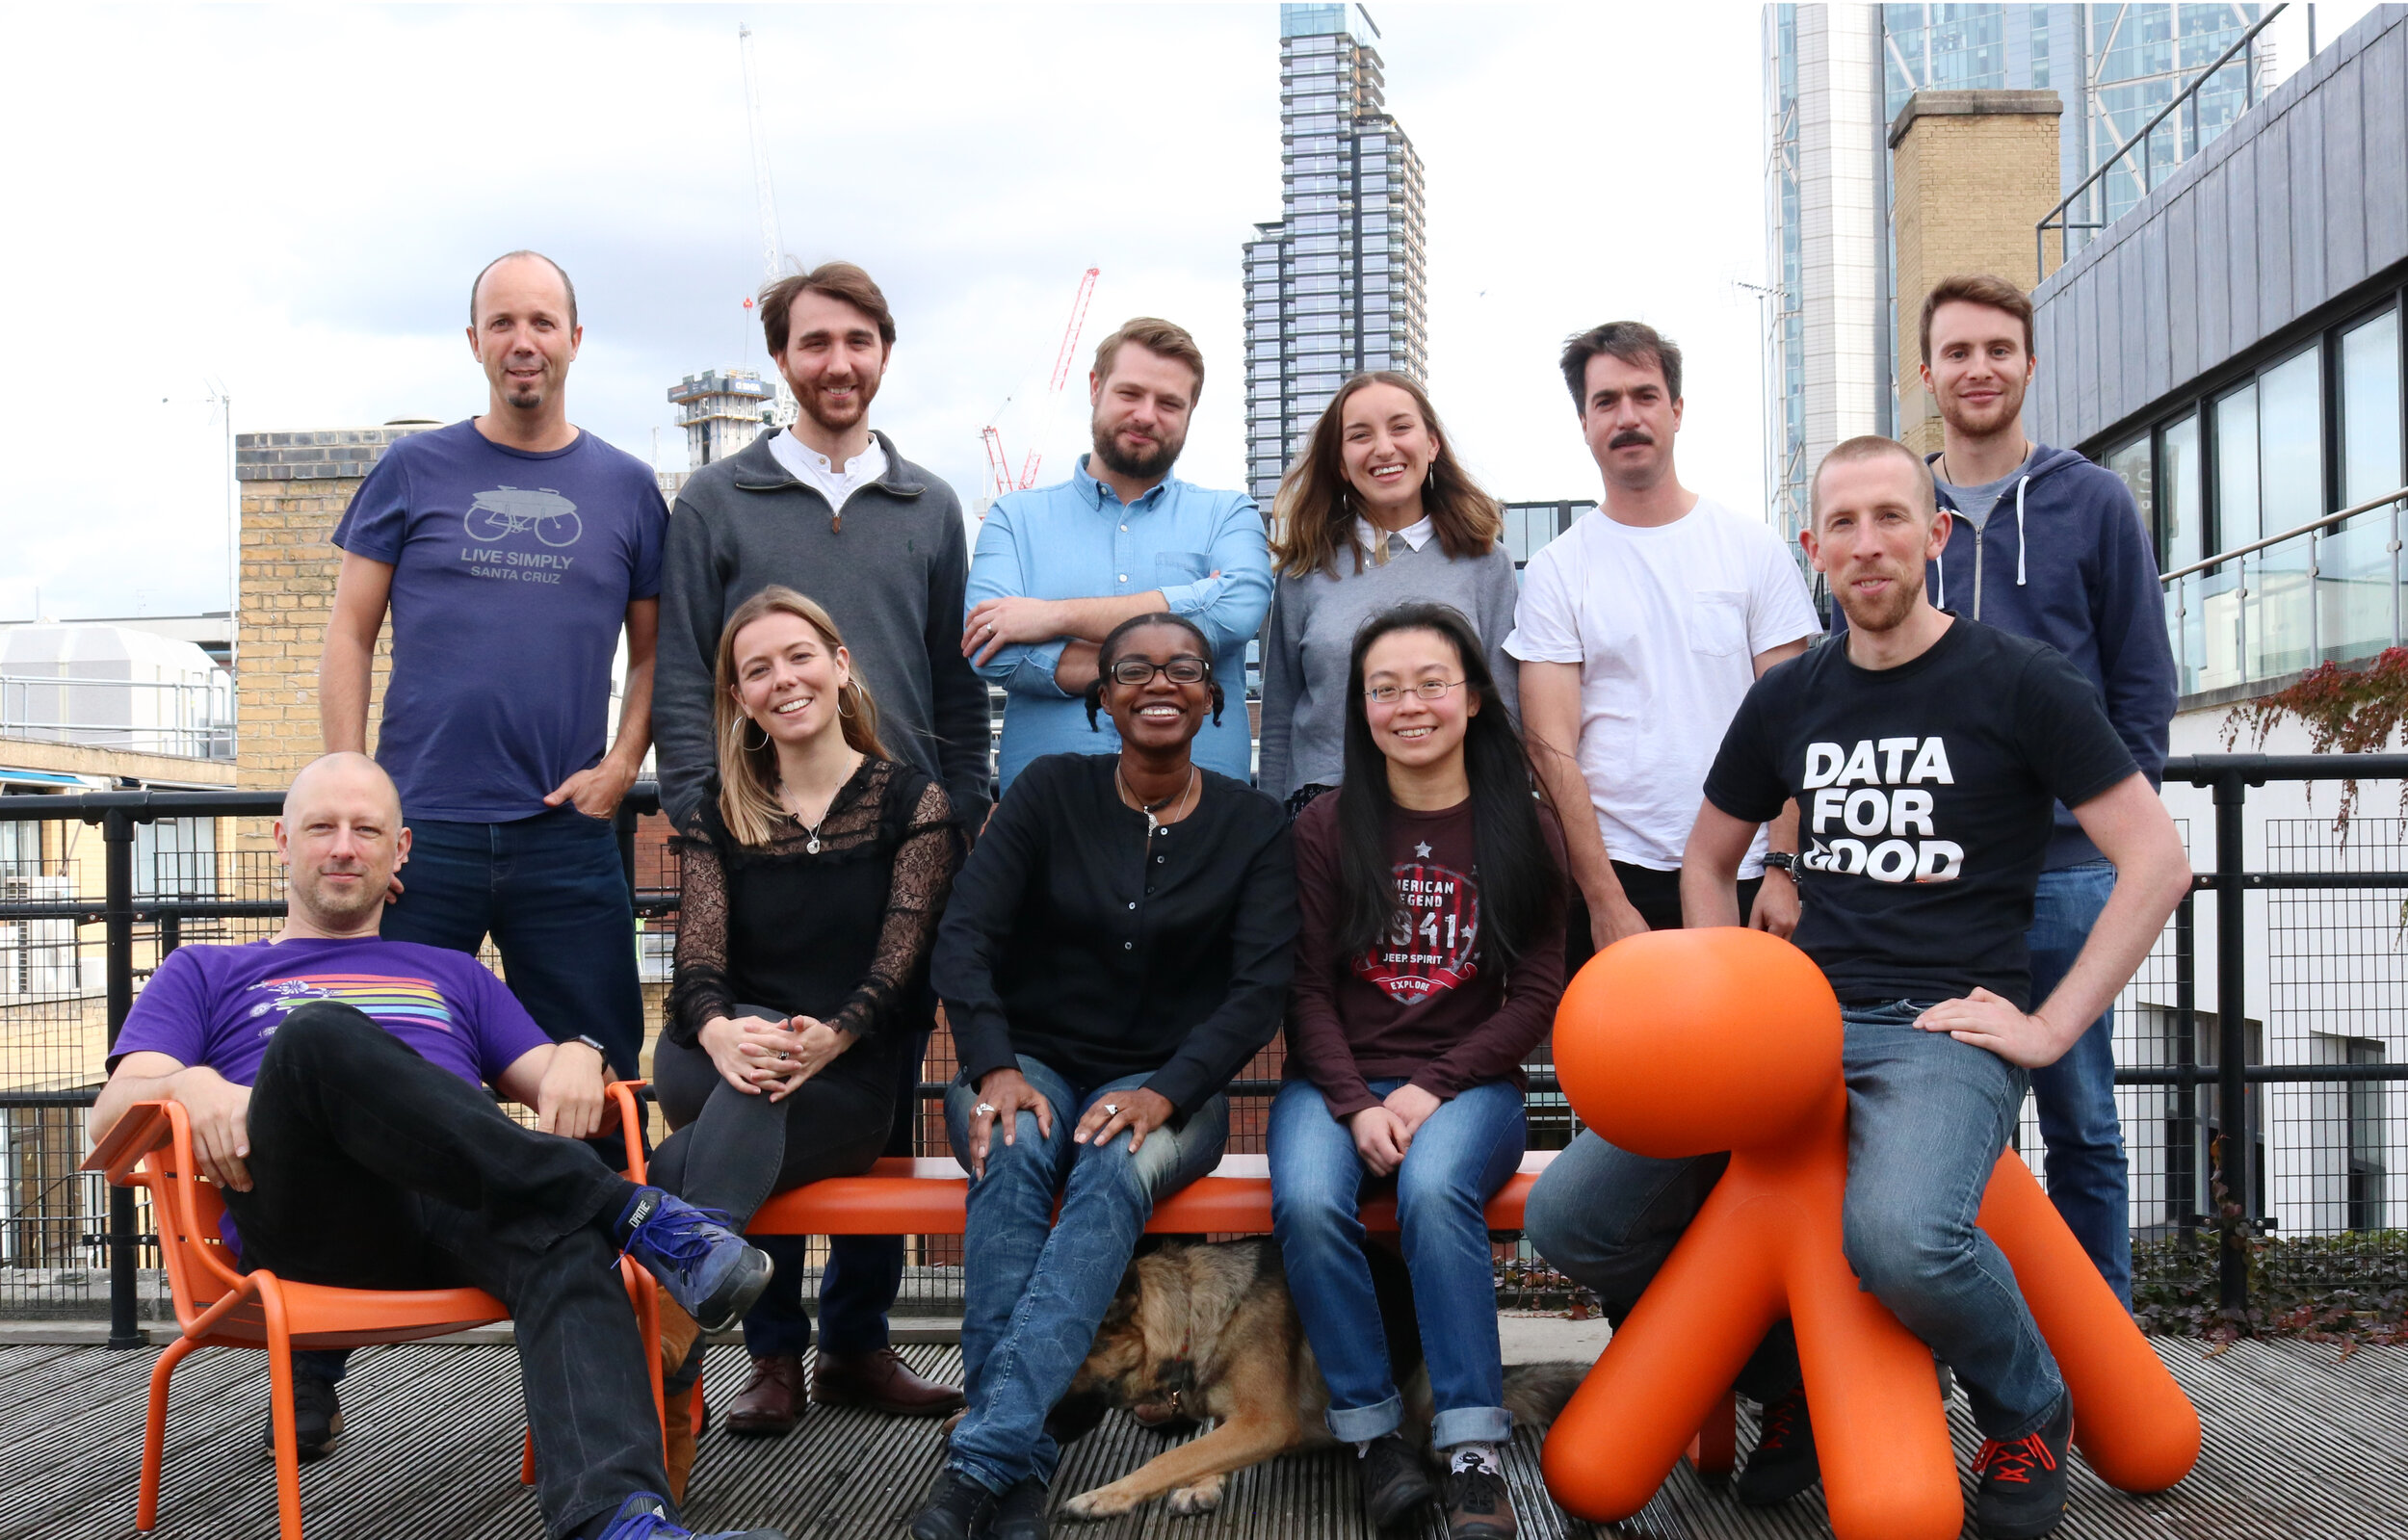 Our amazing team - Based in Wellington (NZ) and London (UK), a clever group of people have united under the shared belief that creating positive, impactful change should be easier for everyone!Read about the people working hard to bring you CoGo.